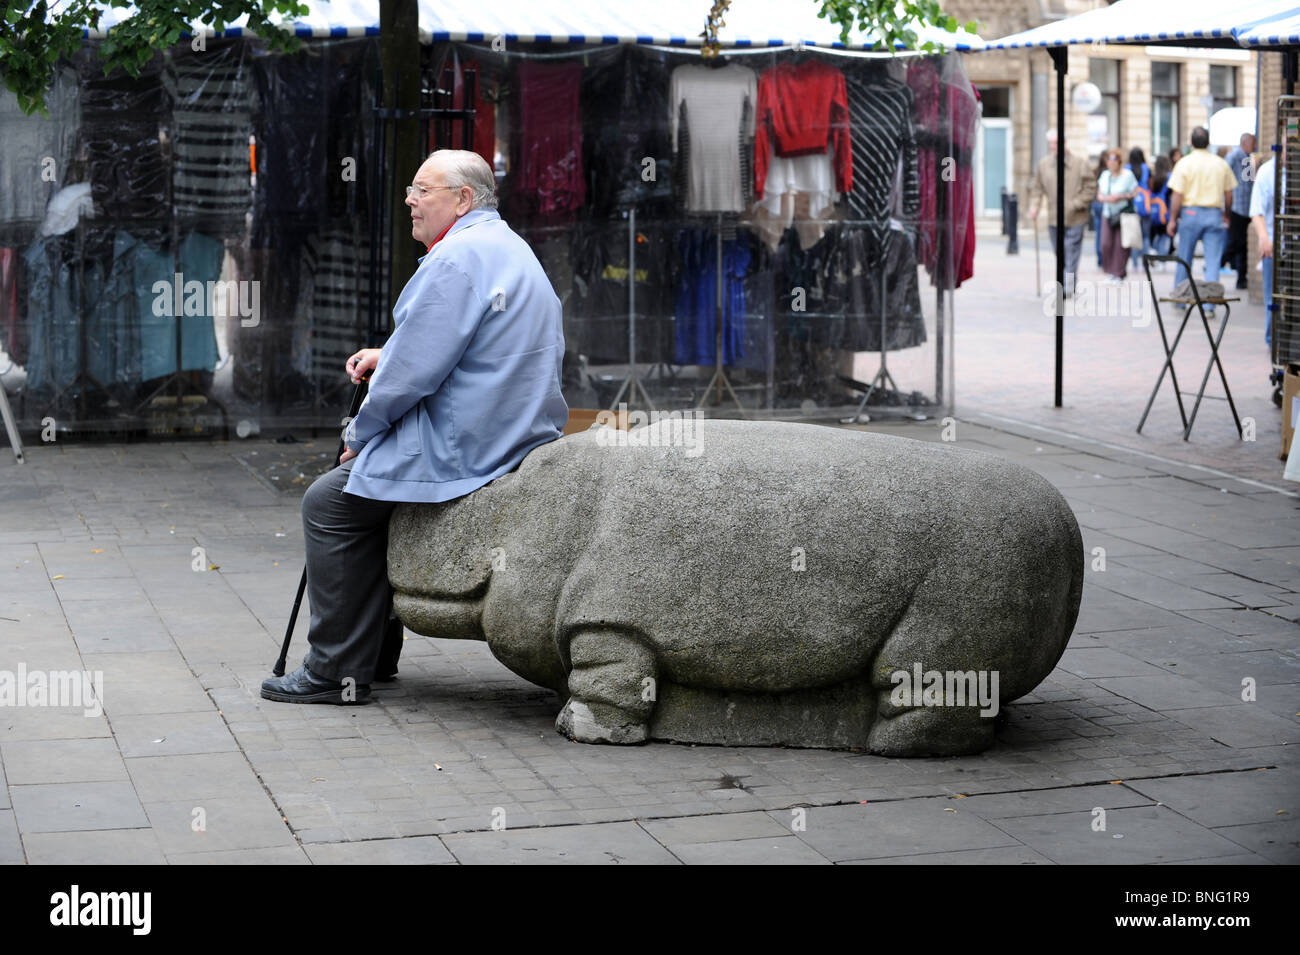 Elderly man taking a rest on a hippo seat Walsall West Midlands England Uk - Stock Image